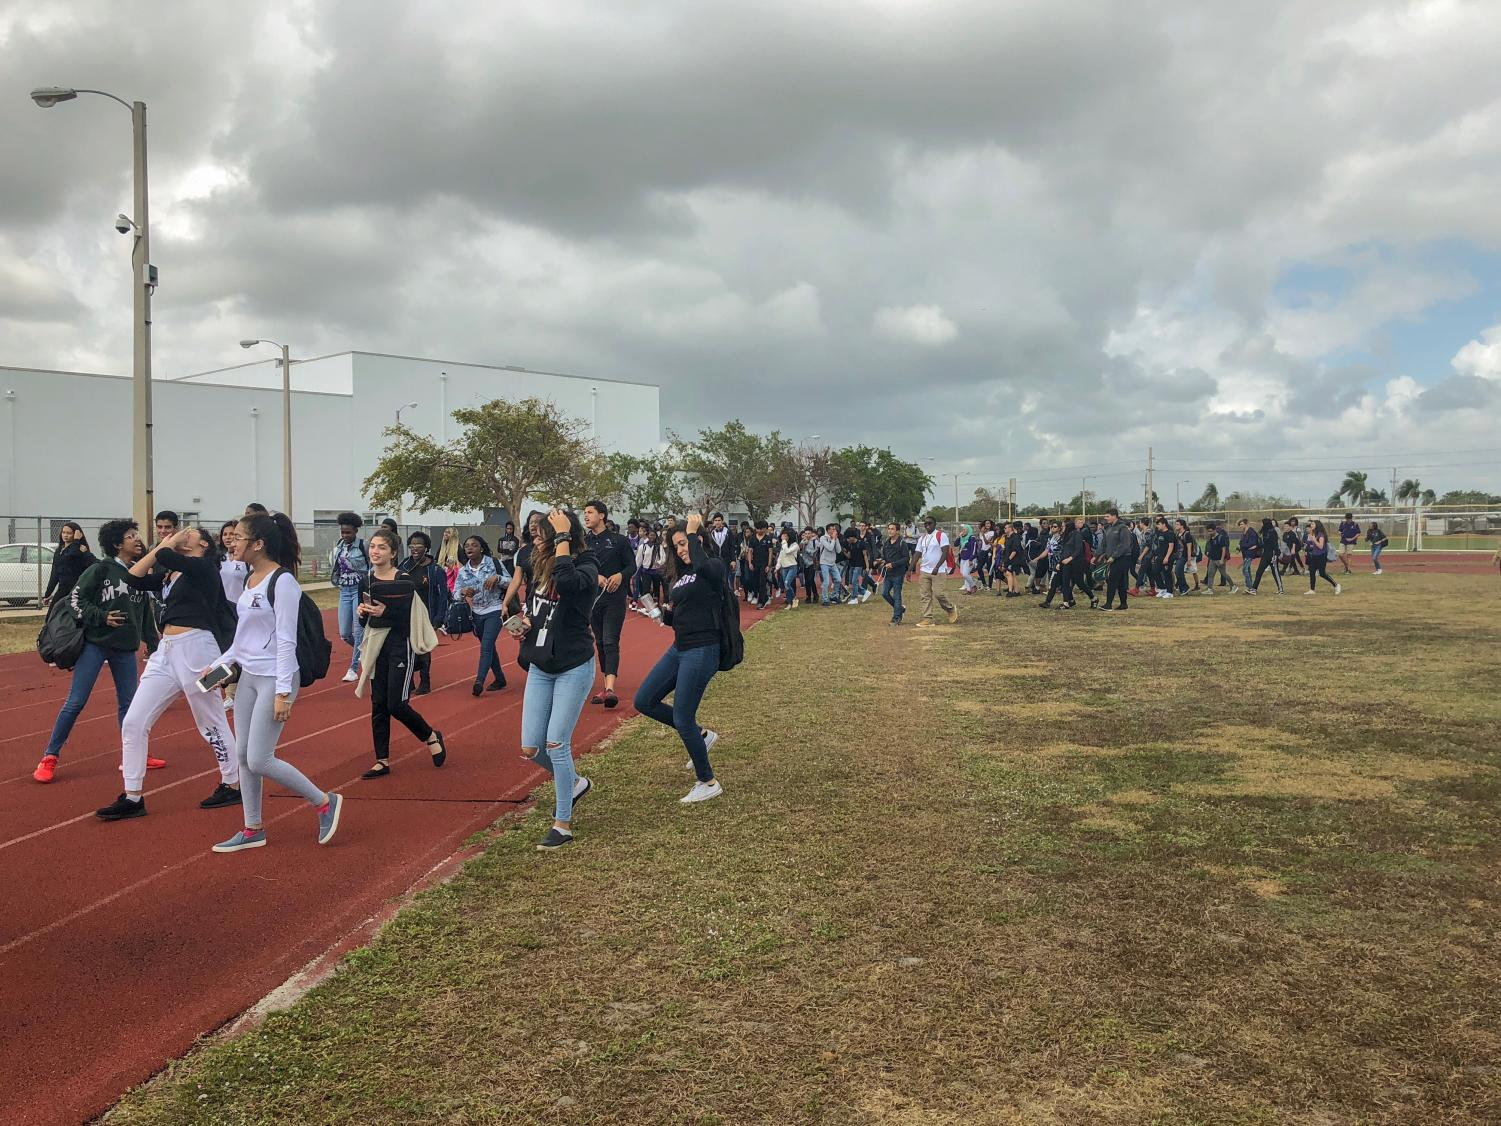 Students walk the track in support of gun control reform as a part of the